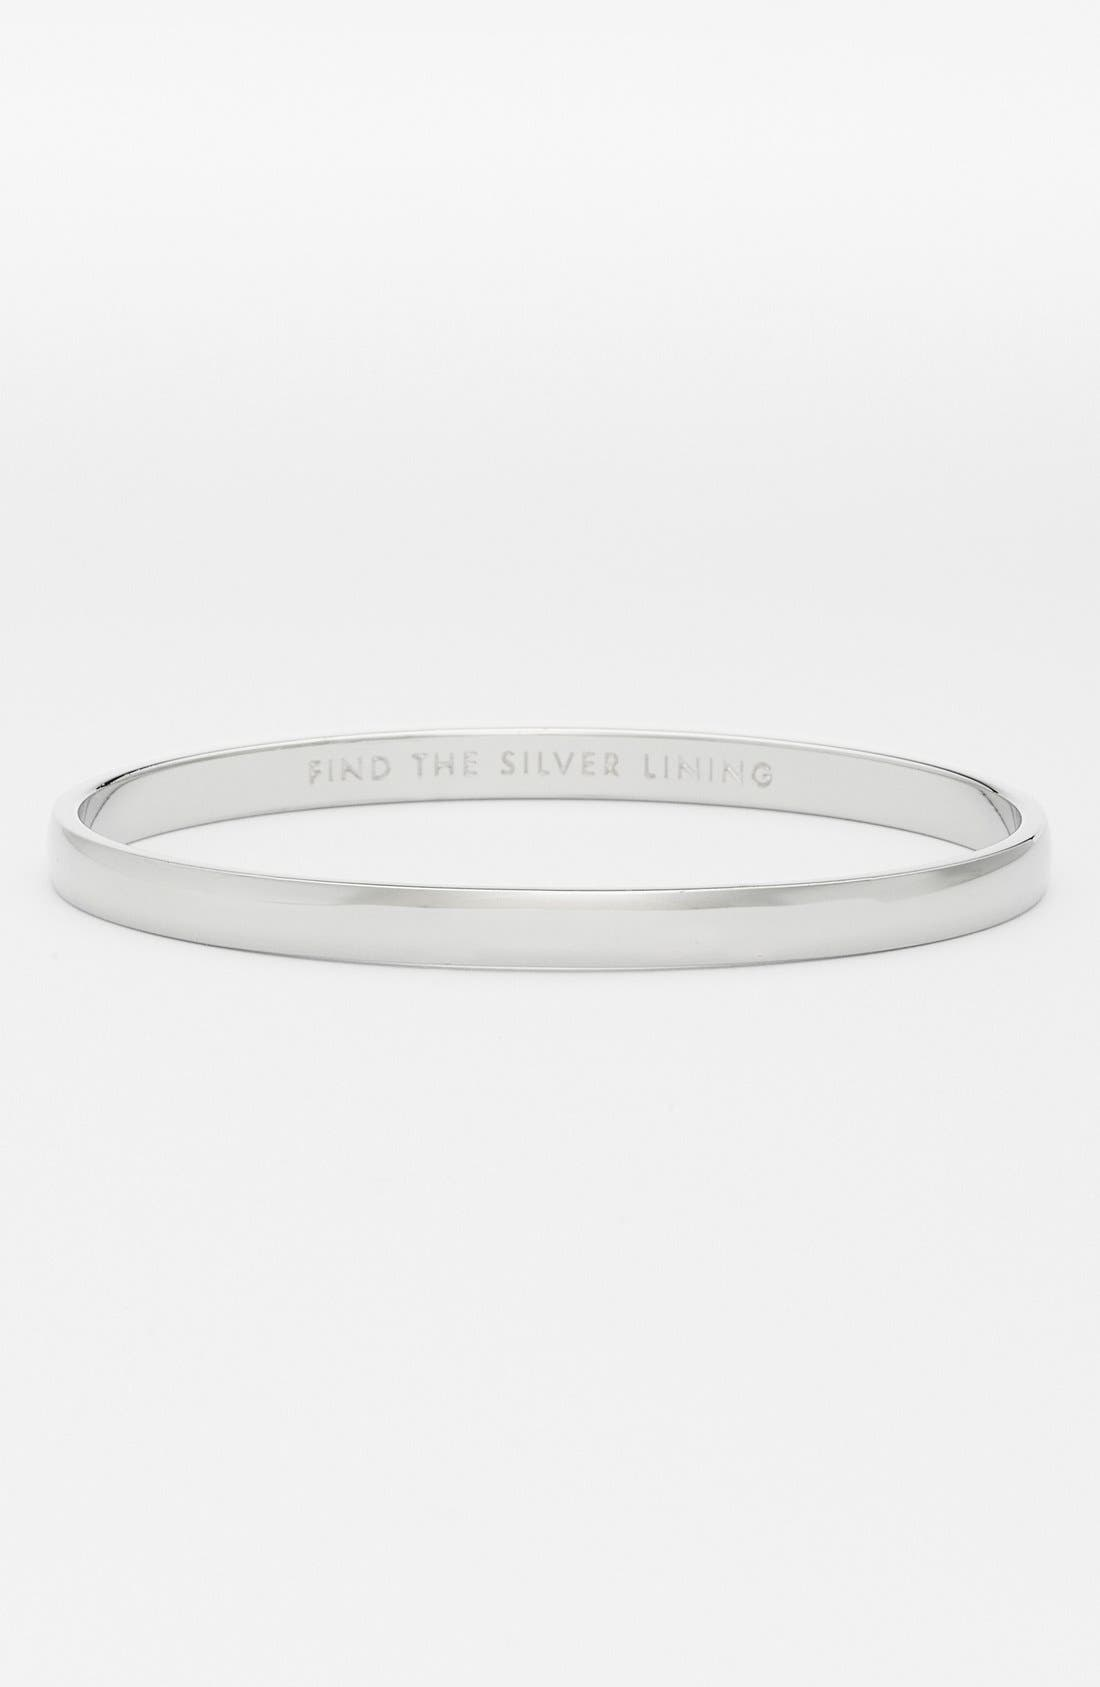 'idiom - find the silver lining' bangle,                             Main thumbnail 1, color,                             SILVER